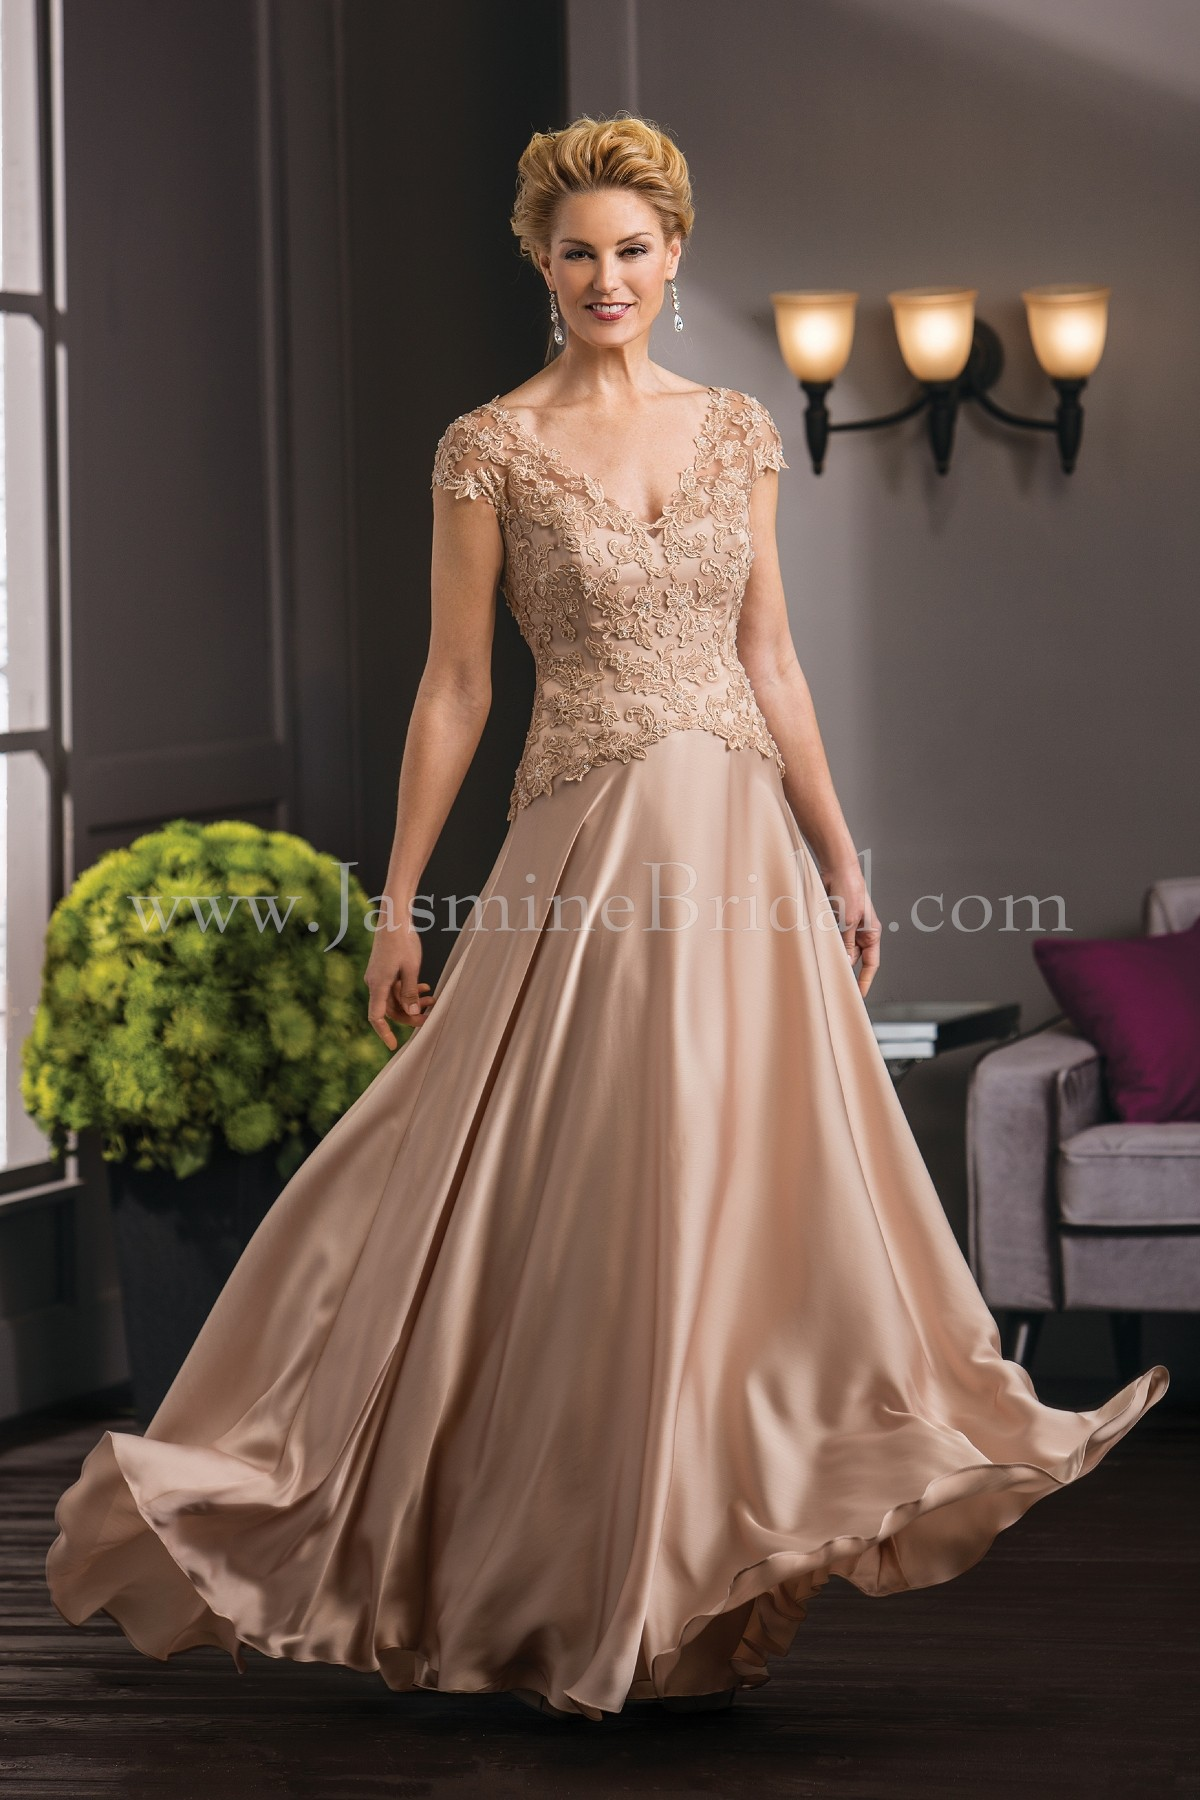 K188051 Long V Neck Lace Satin Face Chiffon Mob Dress With Cap Sleeves